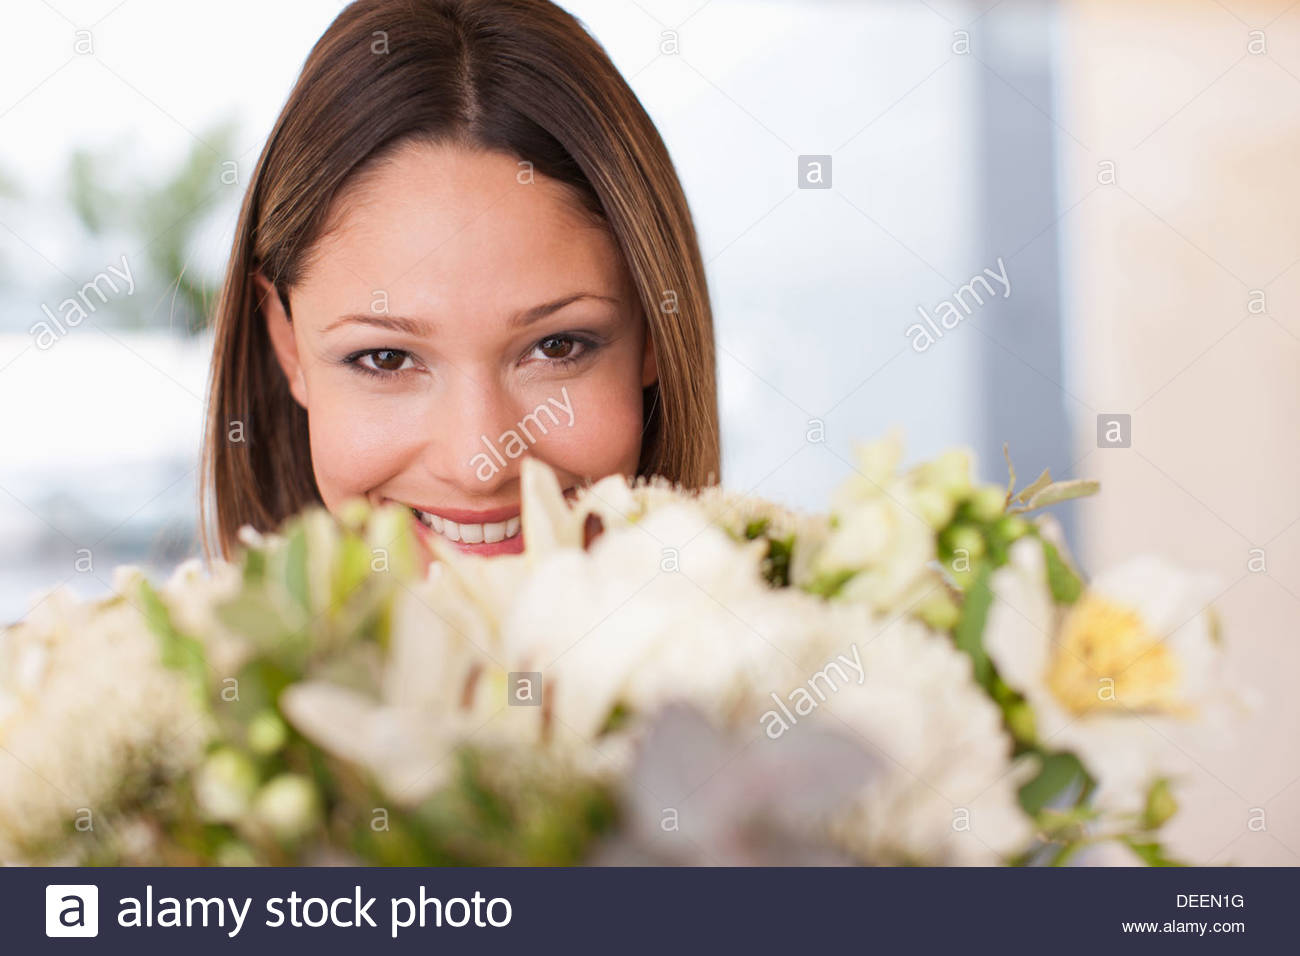 Woman holding bouquet of flowers - Stock Image